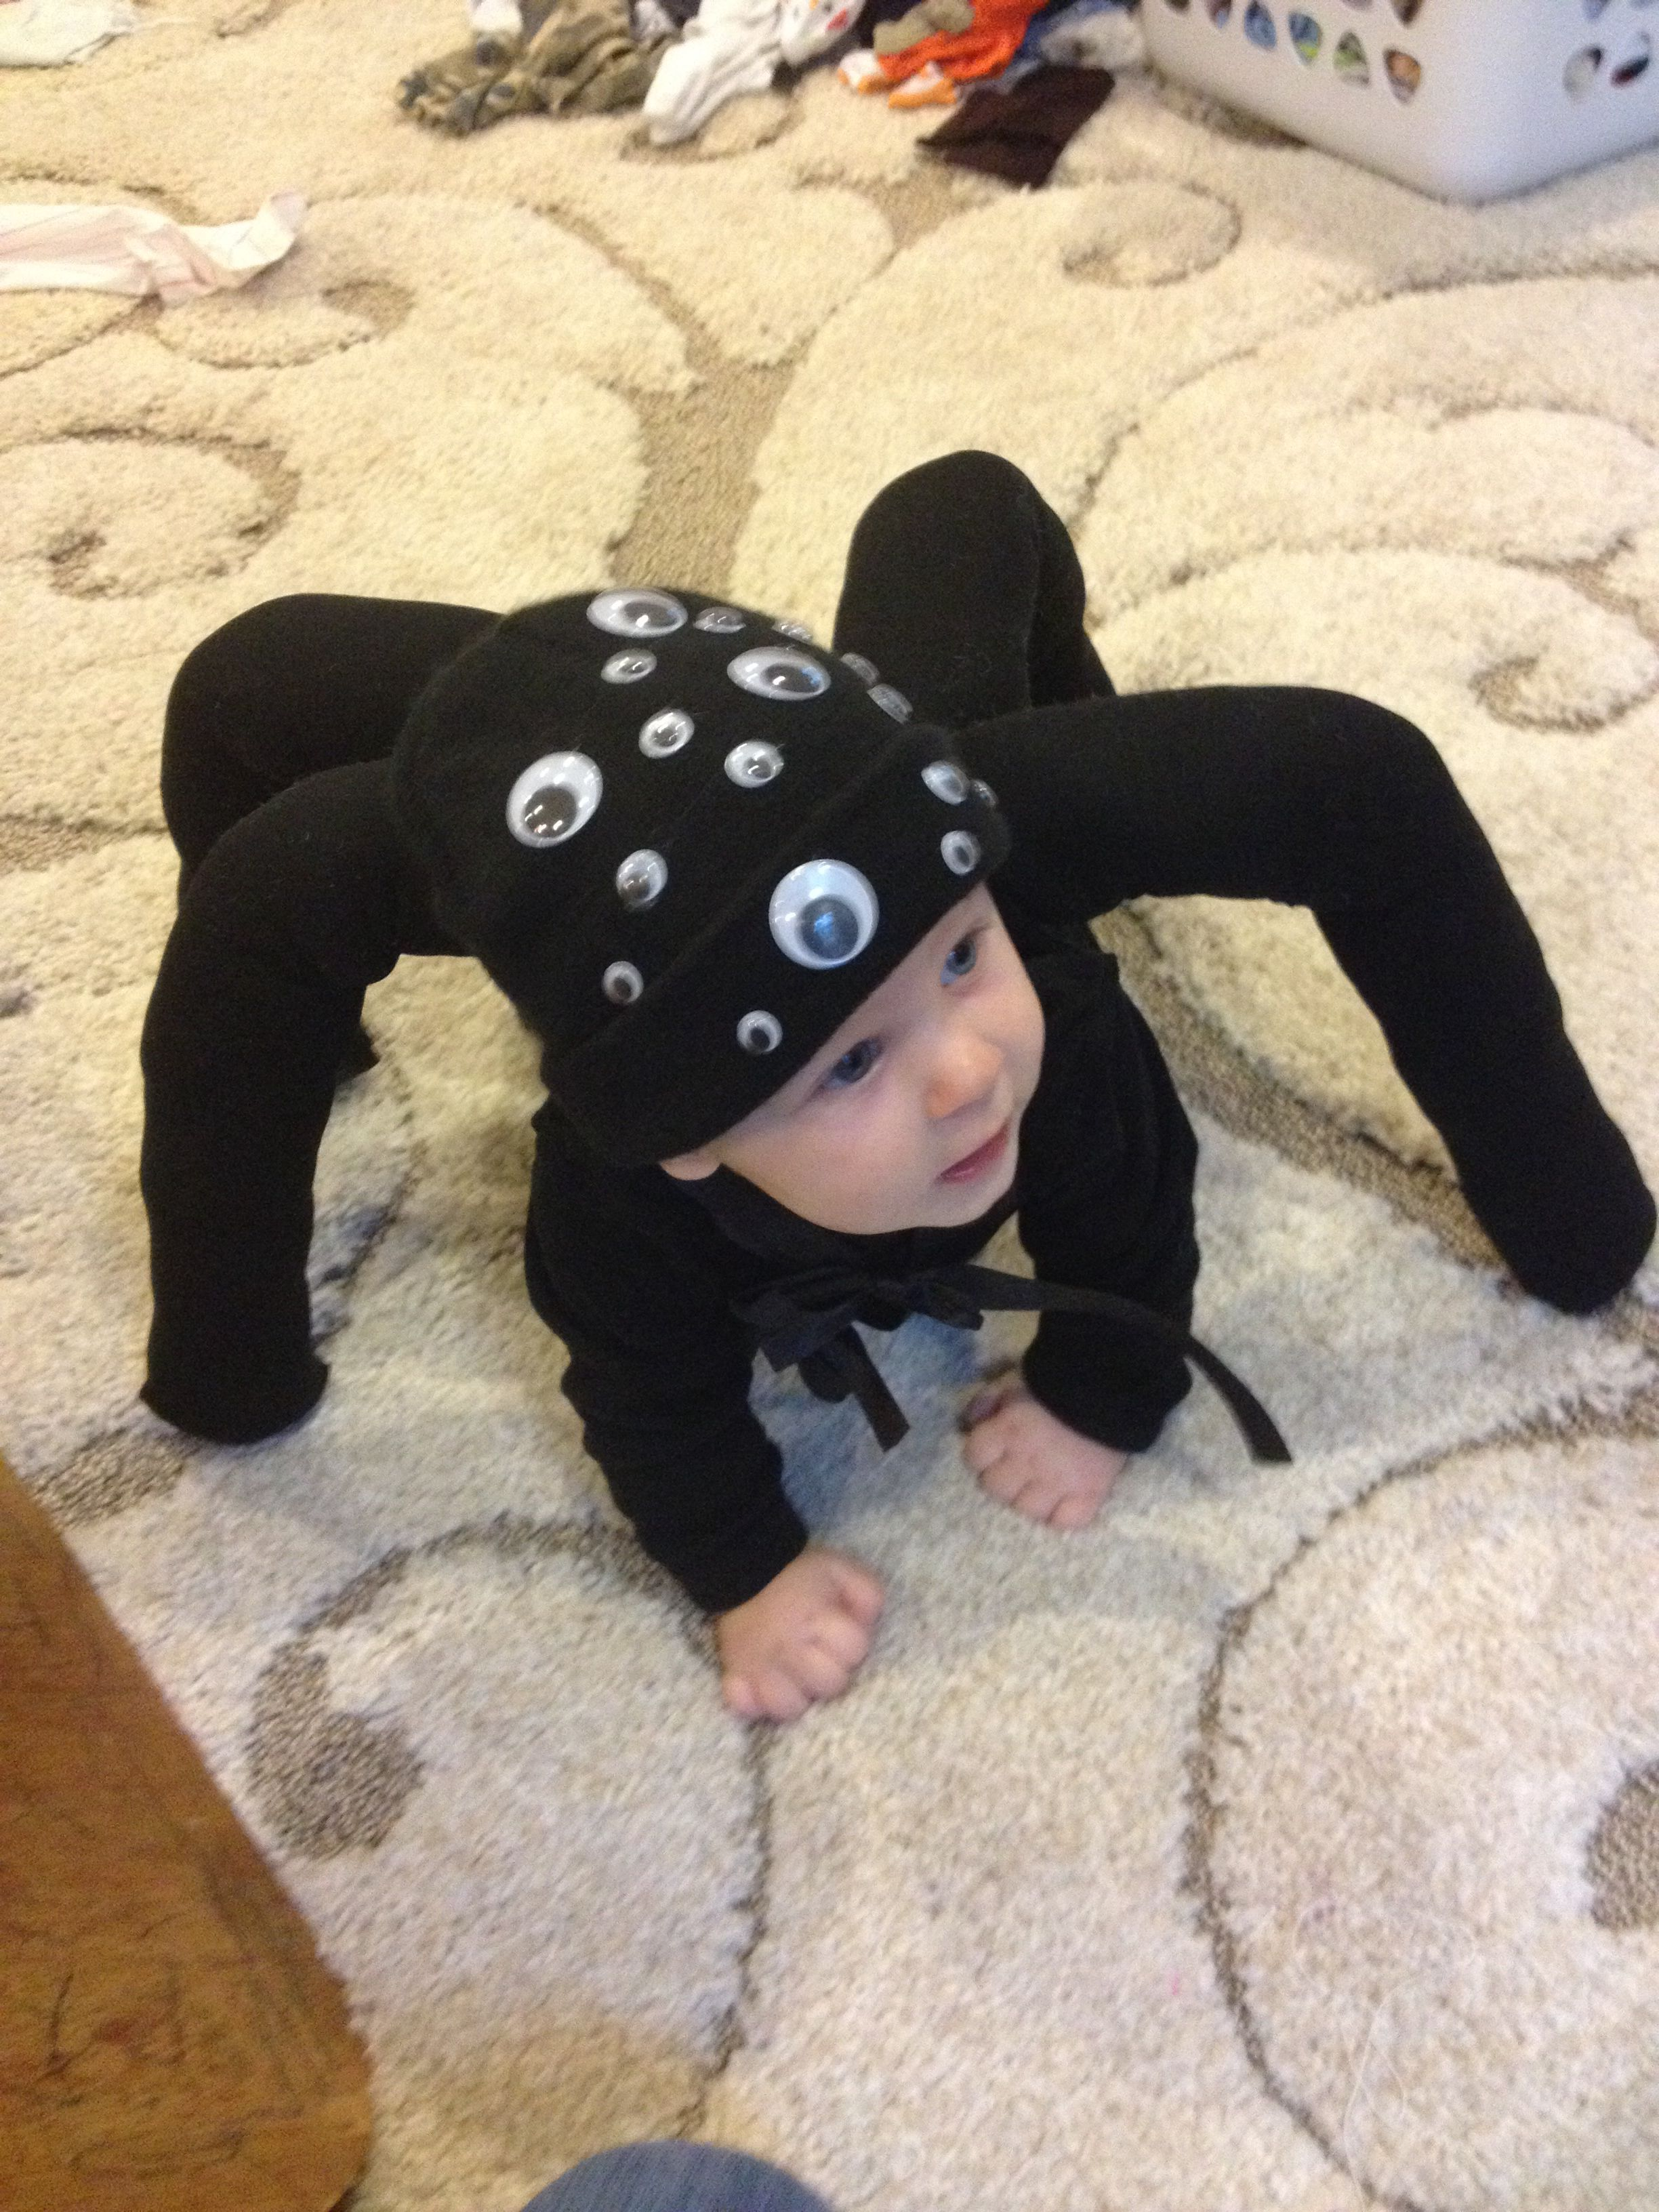 Spider Halloween costume for baby.